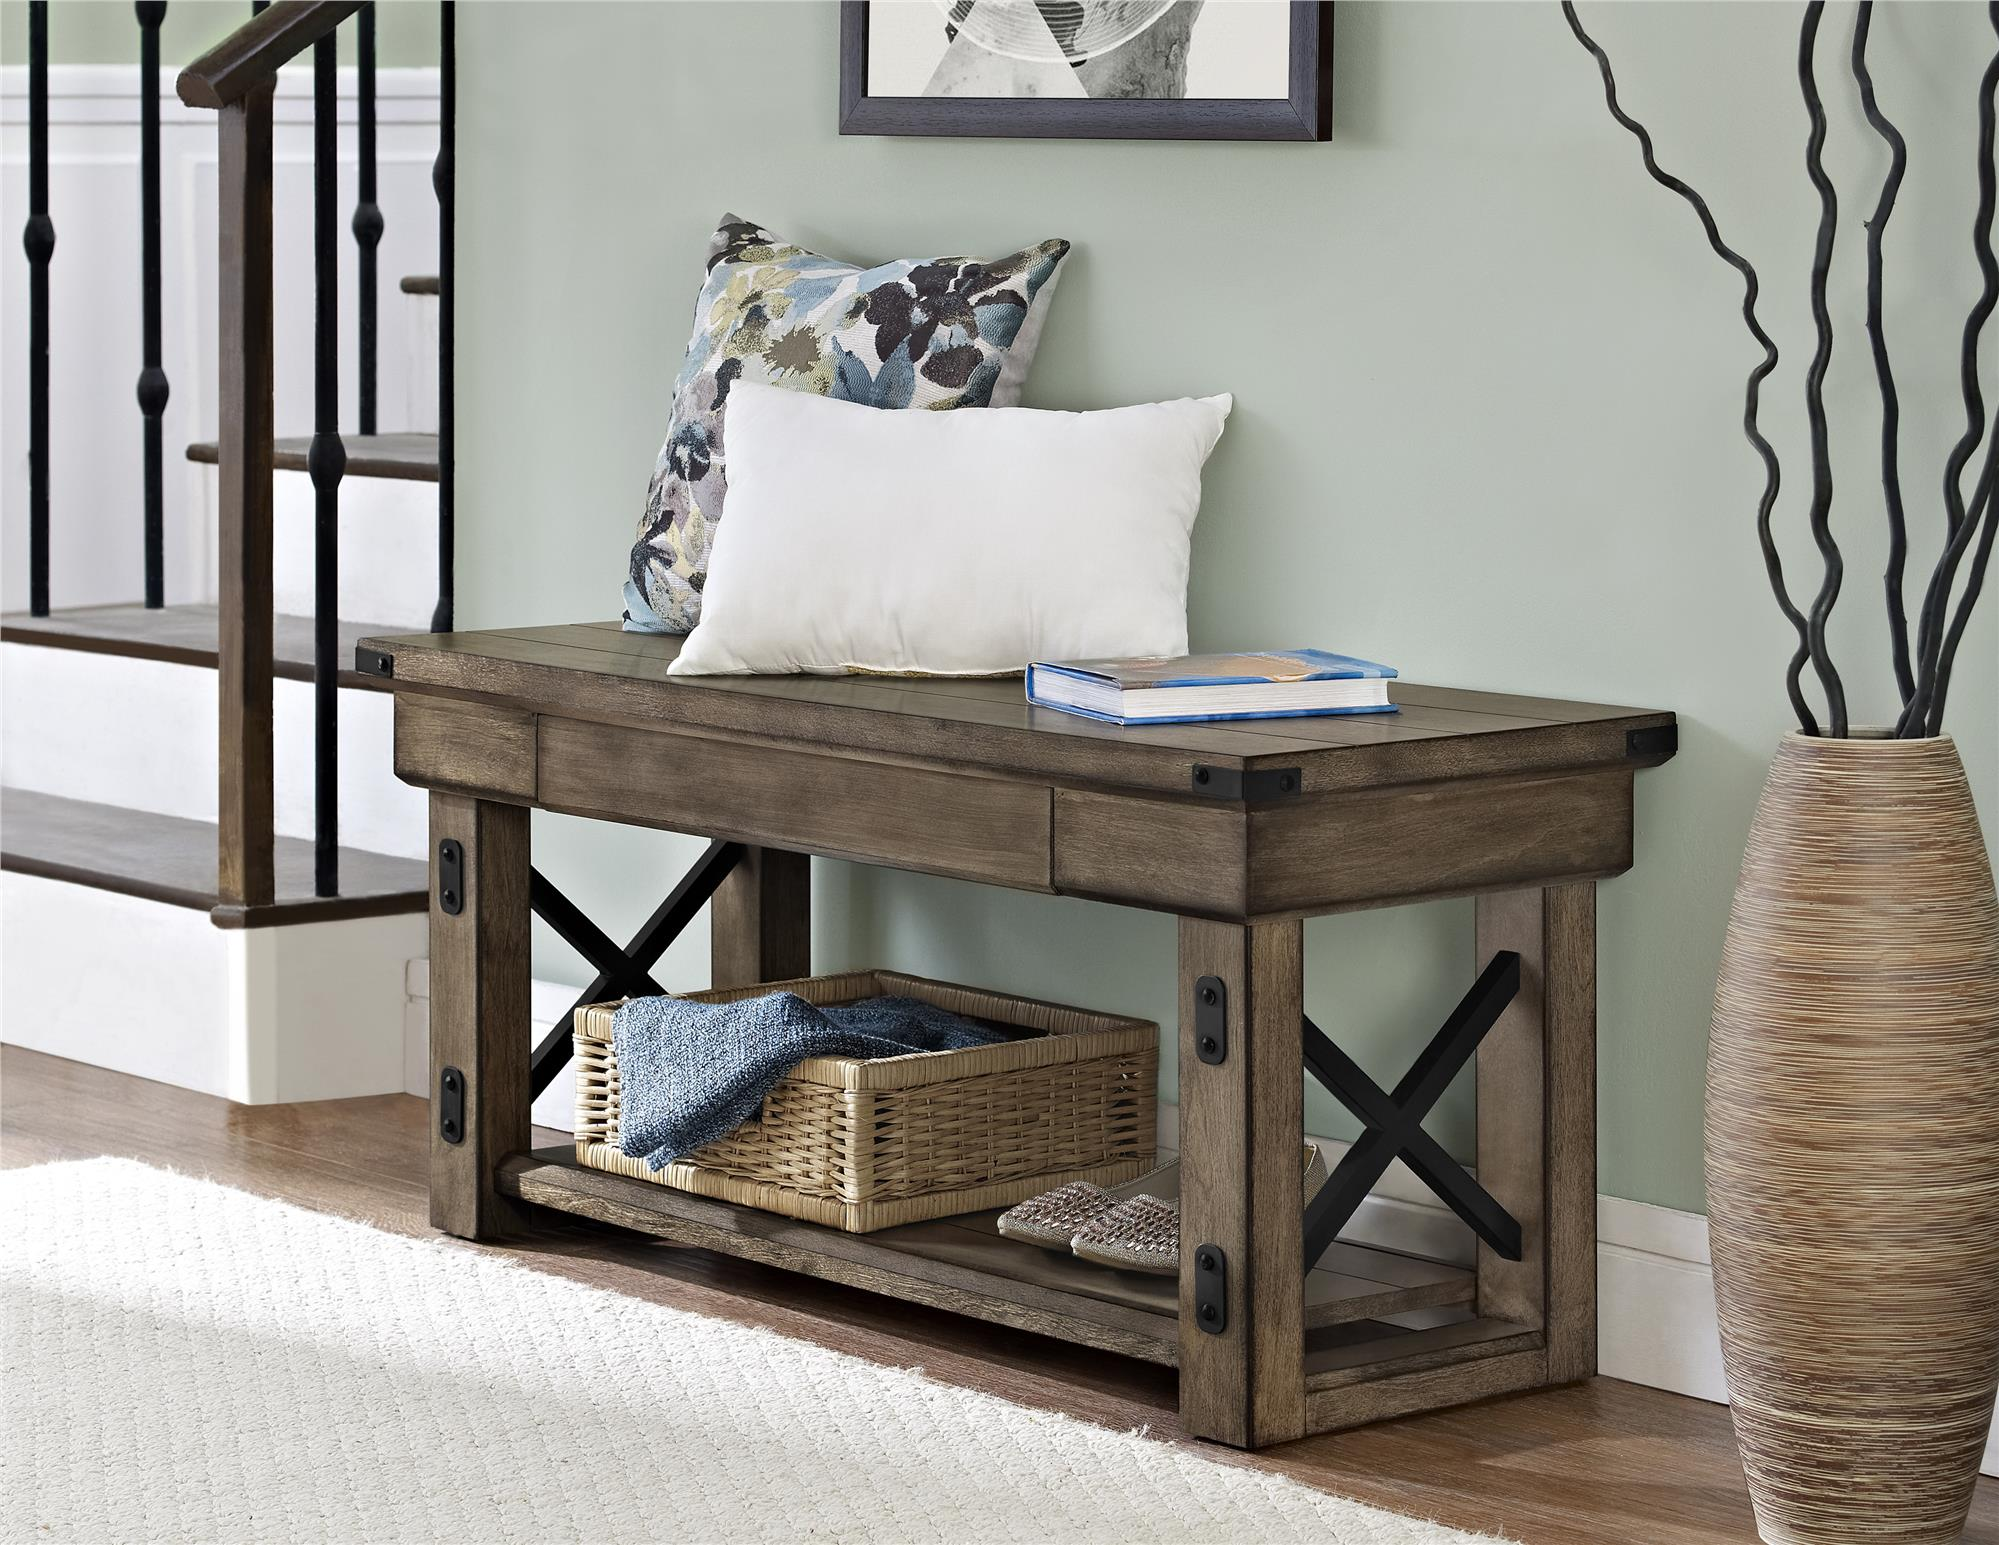 ameriwood furniture wildwood wood veneer entryway bench rustic gray source better homes and gardens accent table end marble martin desk glass mirror dresser occasional tables